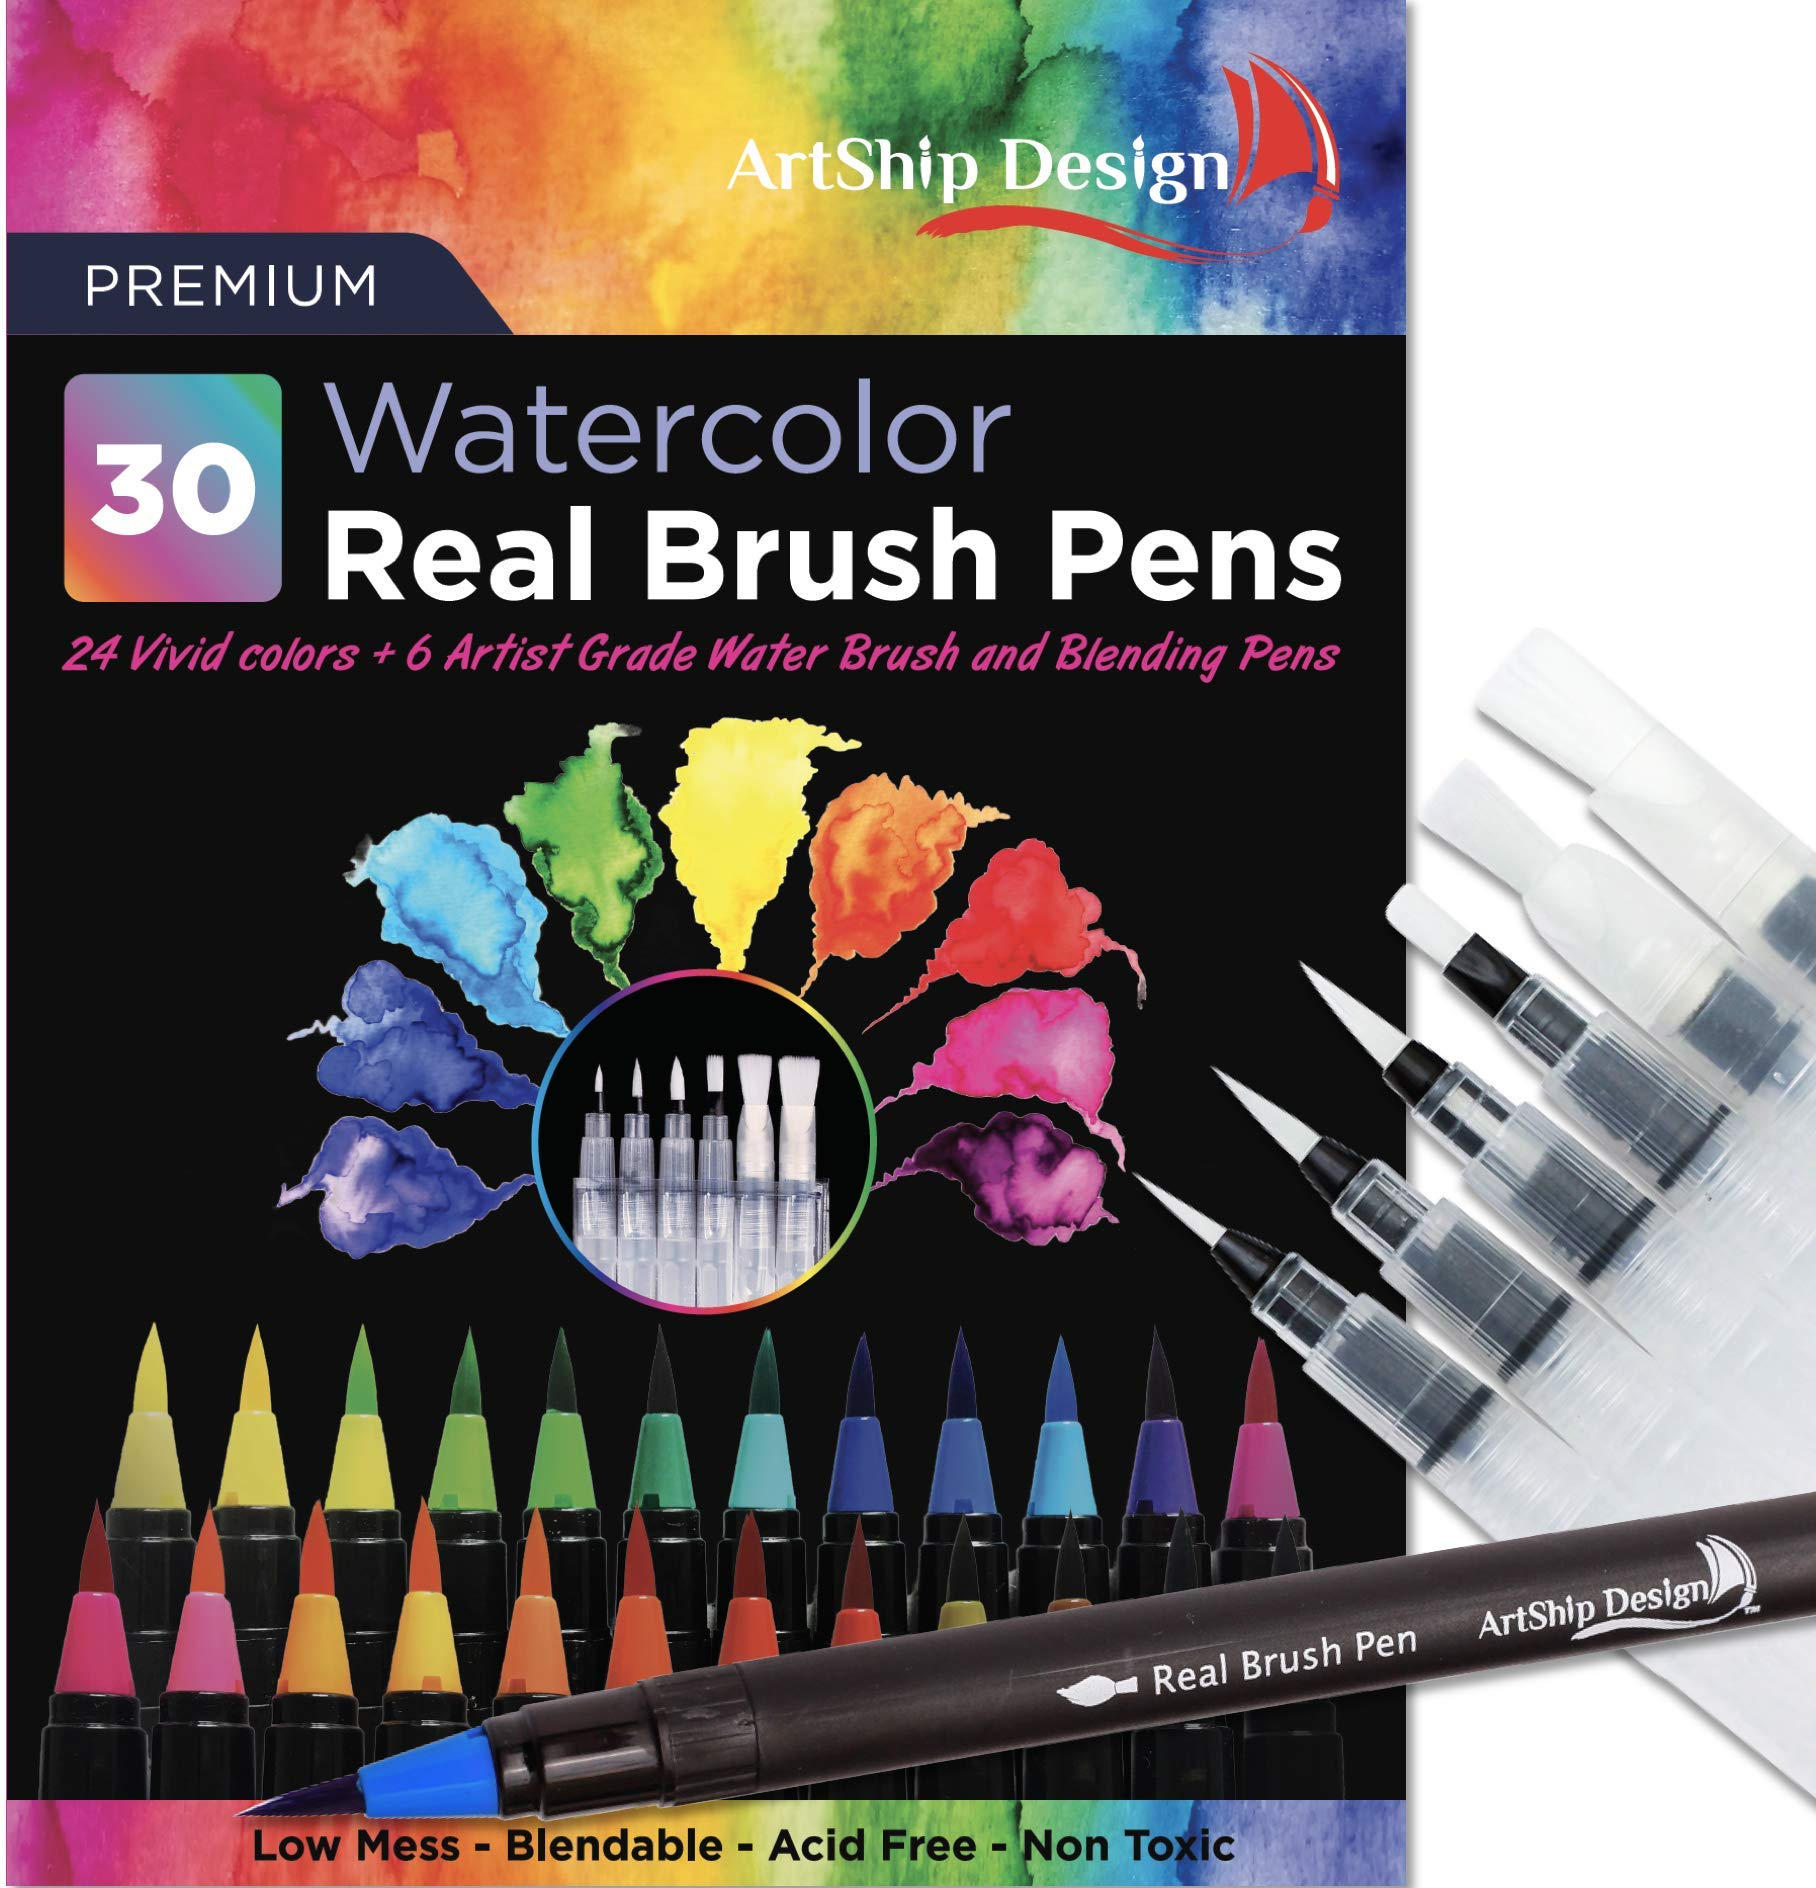 30 Watercolor Brush Pens Combo Pack, 24 Colors 6 Water Brushes, Flexible Real Nylon Brush Tips, for Watercolor Painting Calligraphy Coloring, Beginner or Artist, Portable, Low Mess by ArtShip Design